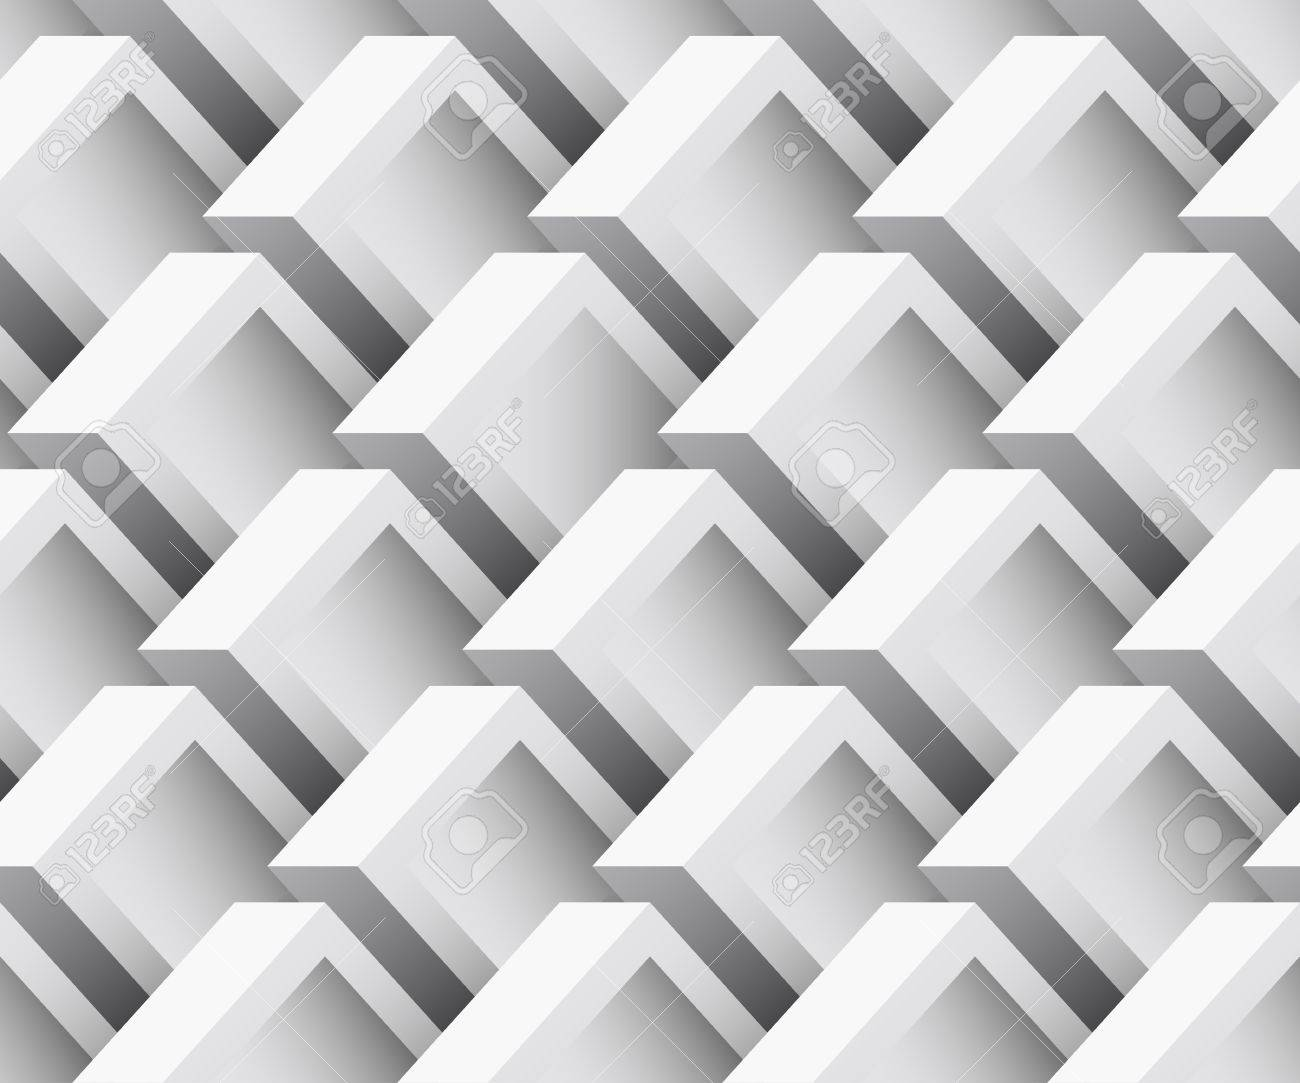 3d seamless texture  Abstract geometric background  EPS 8 vector illustration Stock Vector - 23104043